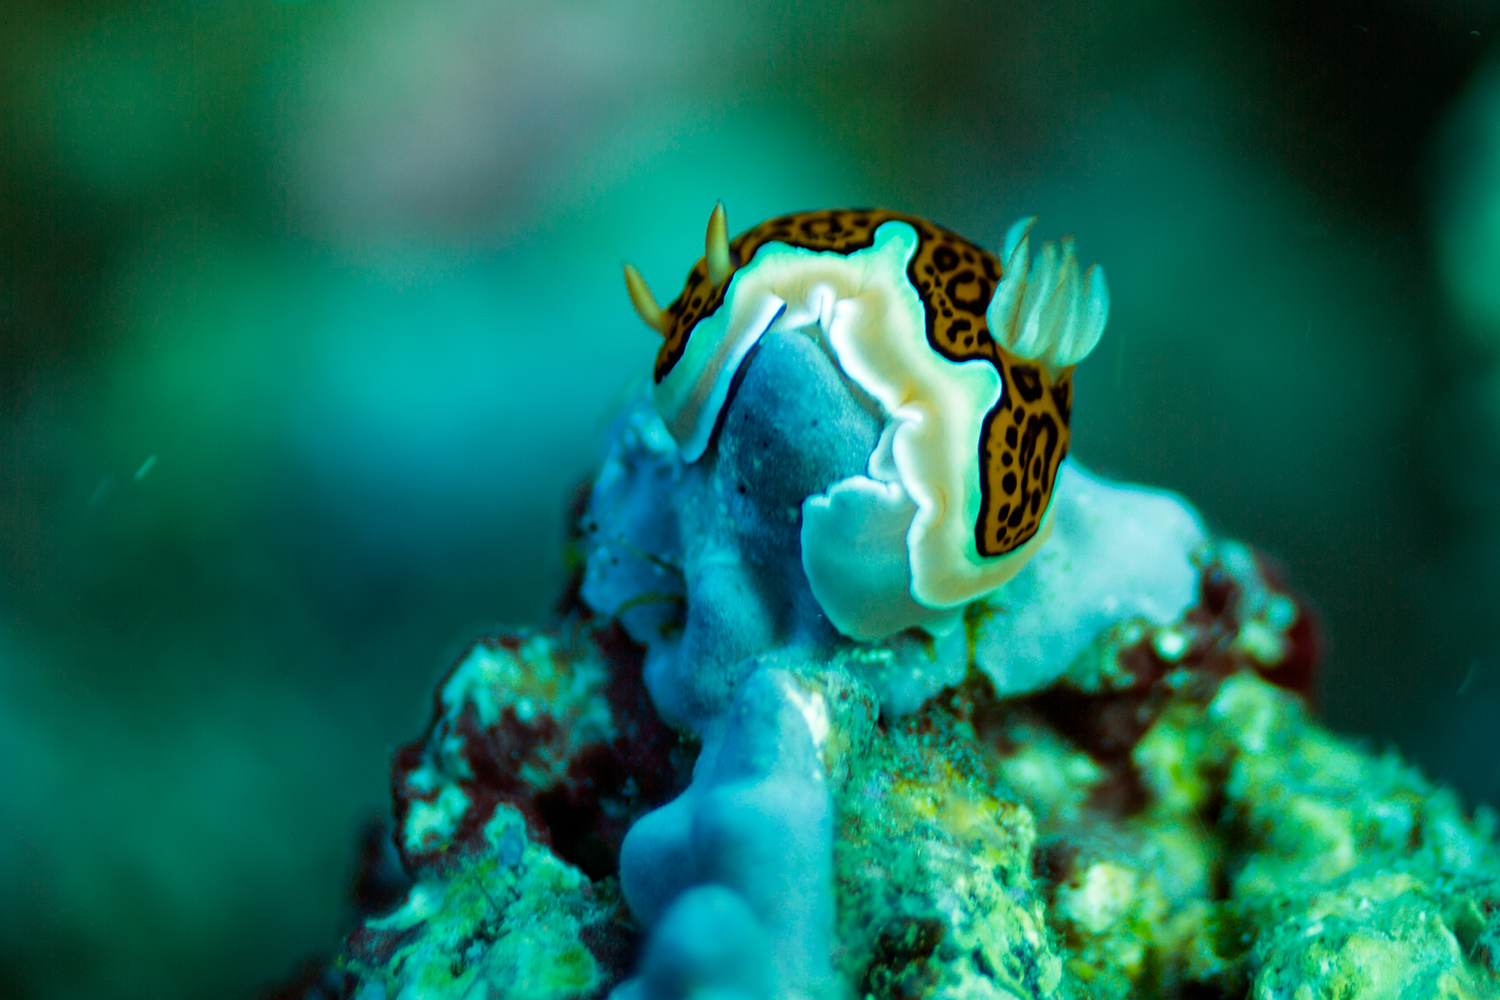 A little nudi clinging for its life in the strong Maldivian currents.